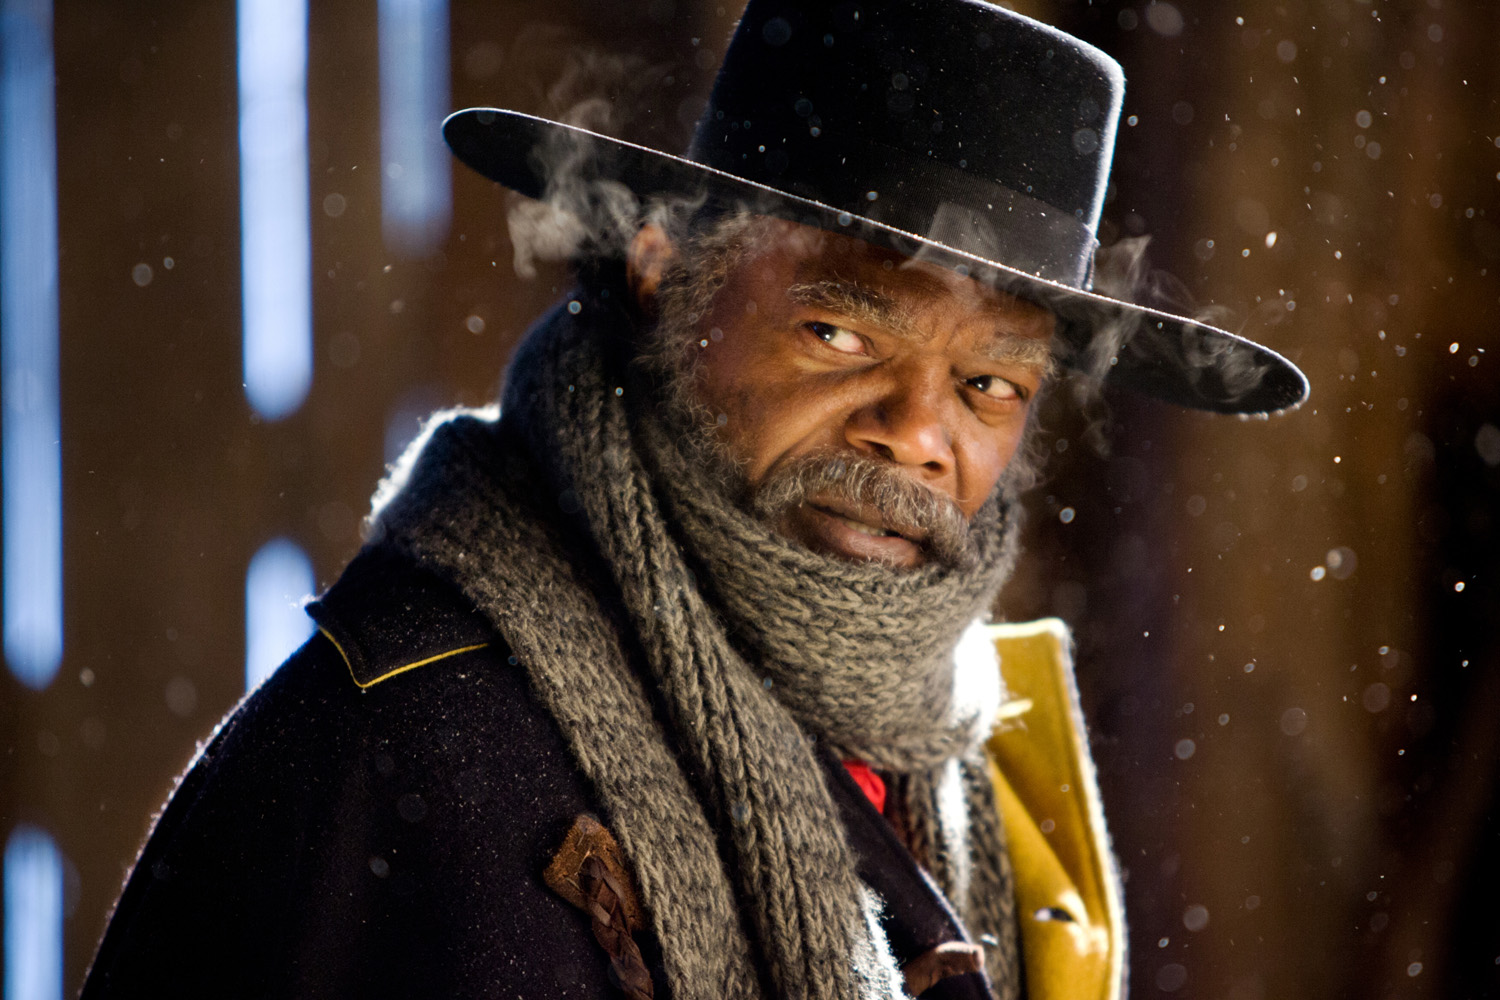 The Hateful Eight, la nuova pellicola Tarantino a Cinecittà